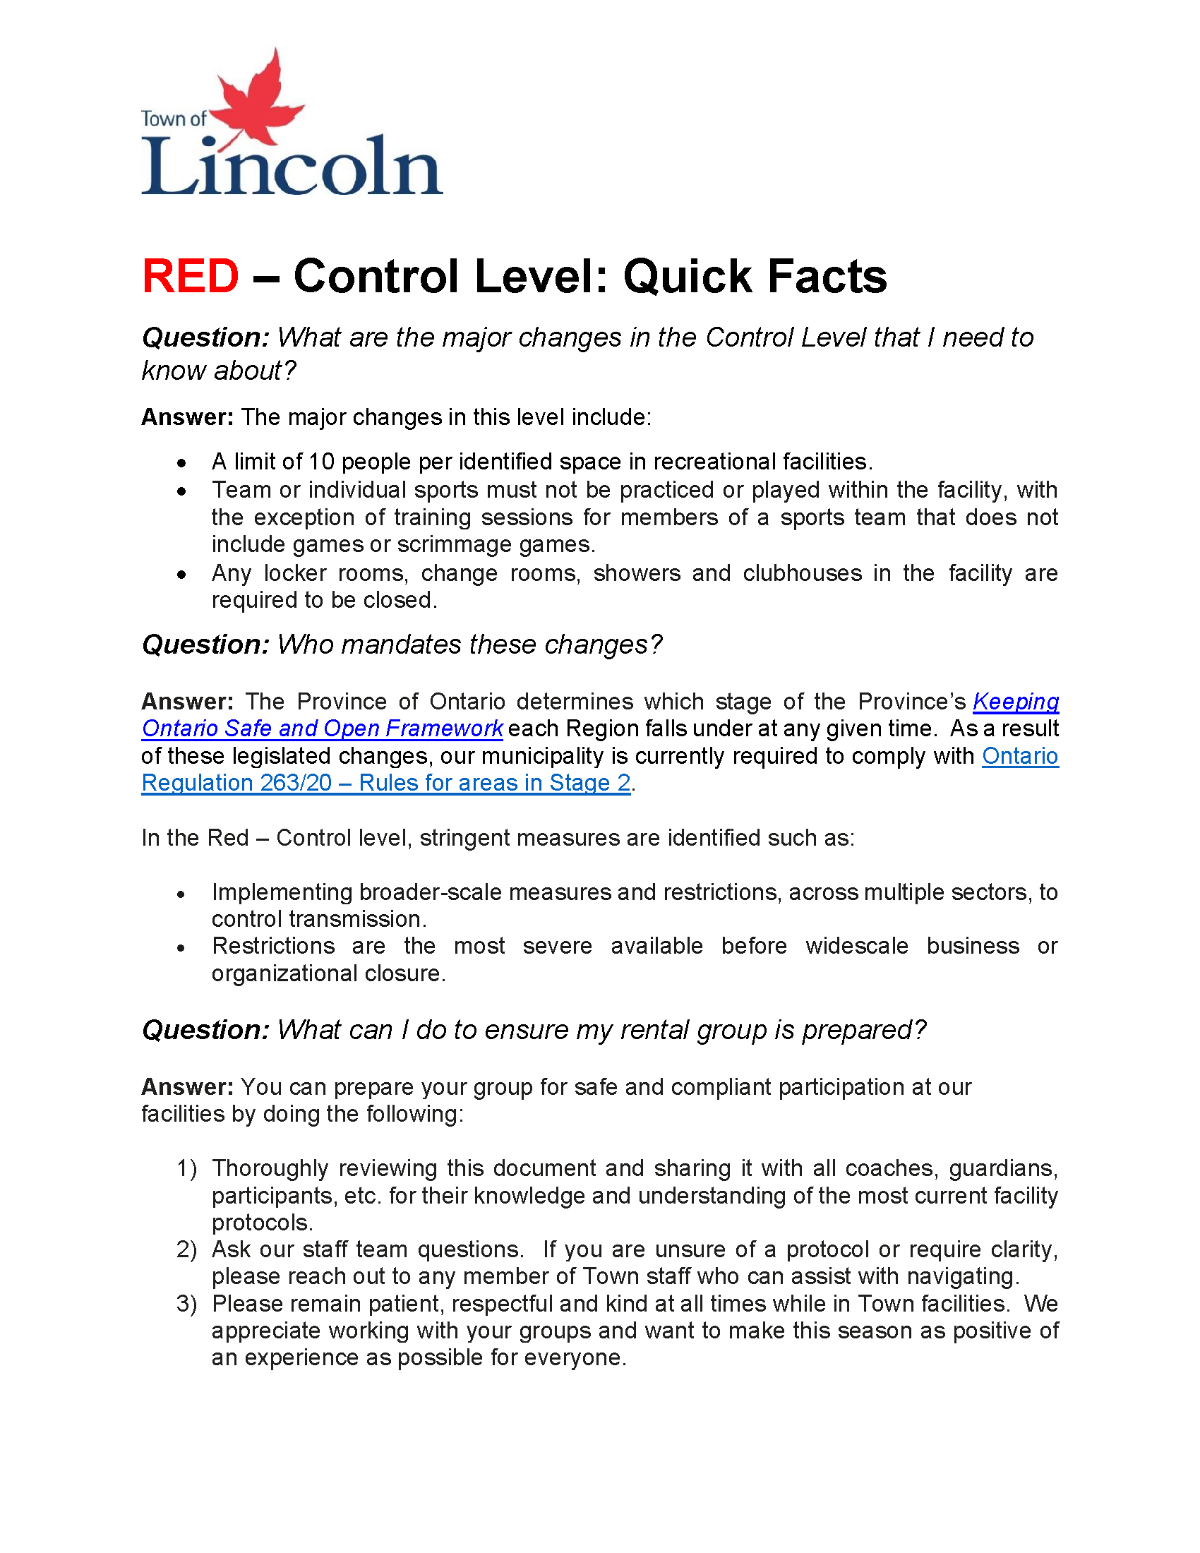 RED_-_COVID_19_Fleming_Arena_Protcols_-_updated_February_2021.pdf_Page_1.png